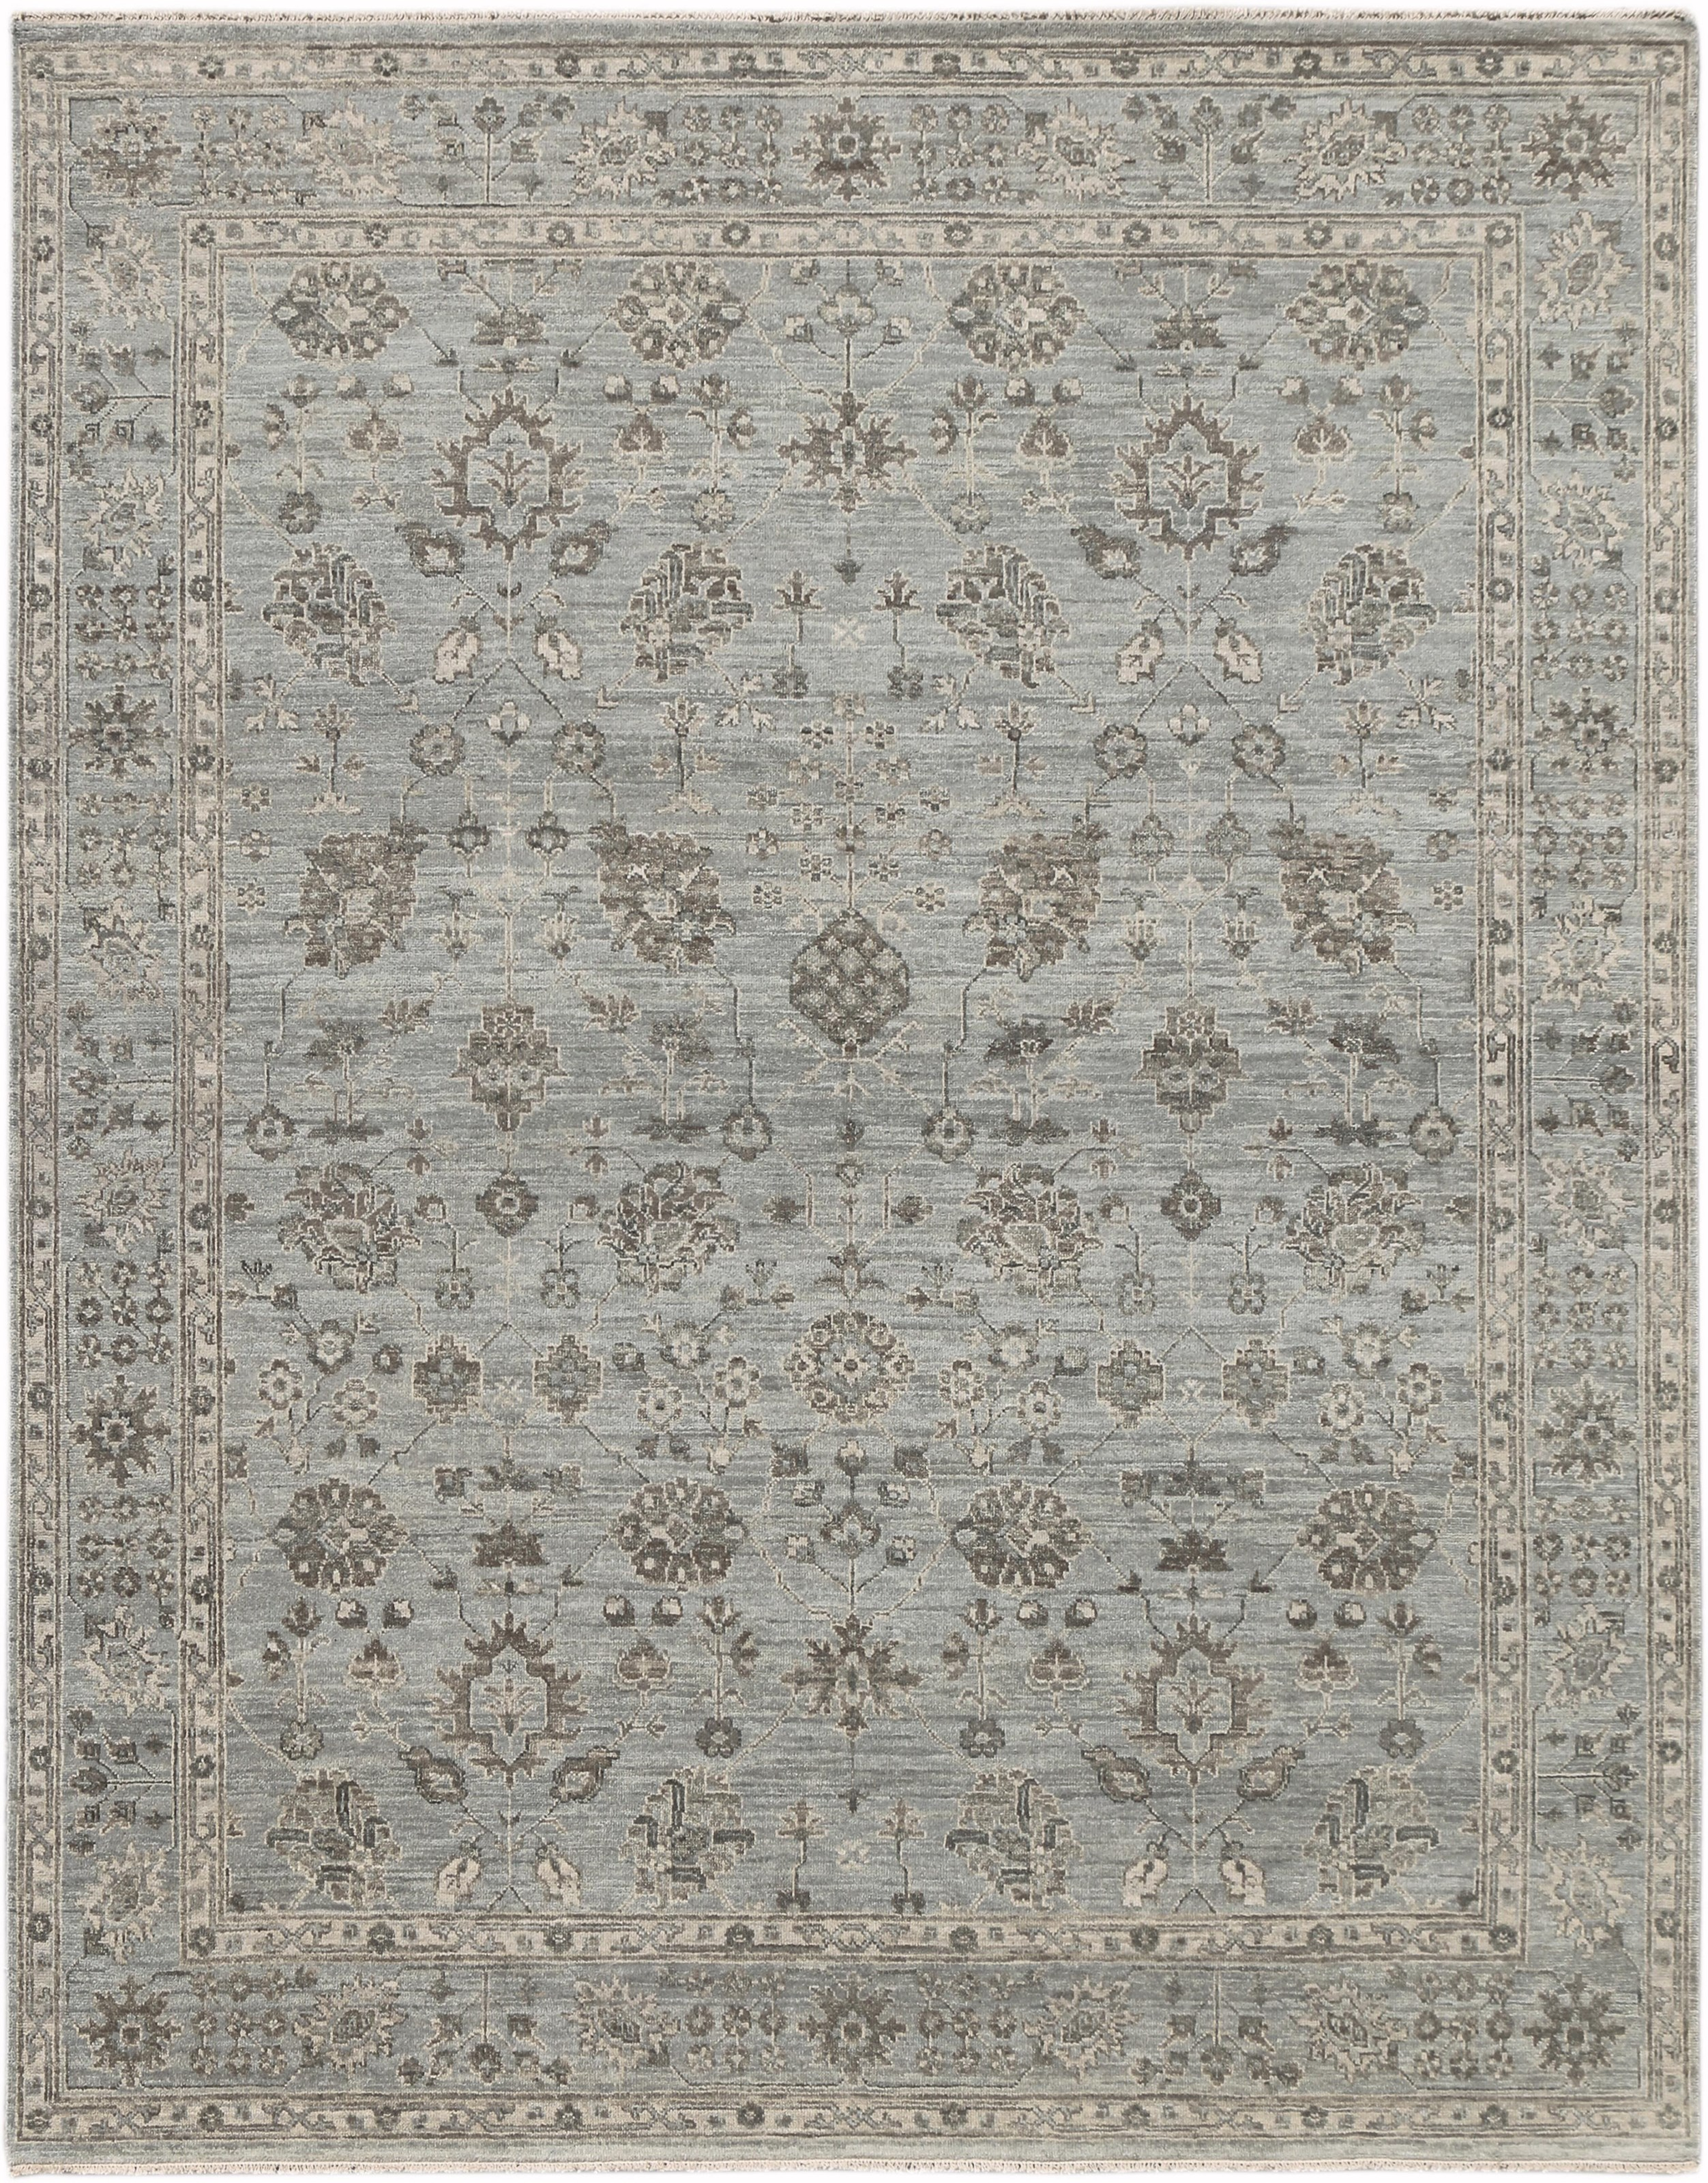 NUIT ARABE Ice Blue Traditional by Amer Rugs at Sprintz Furniture